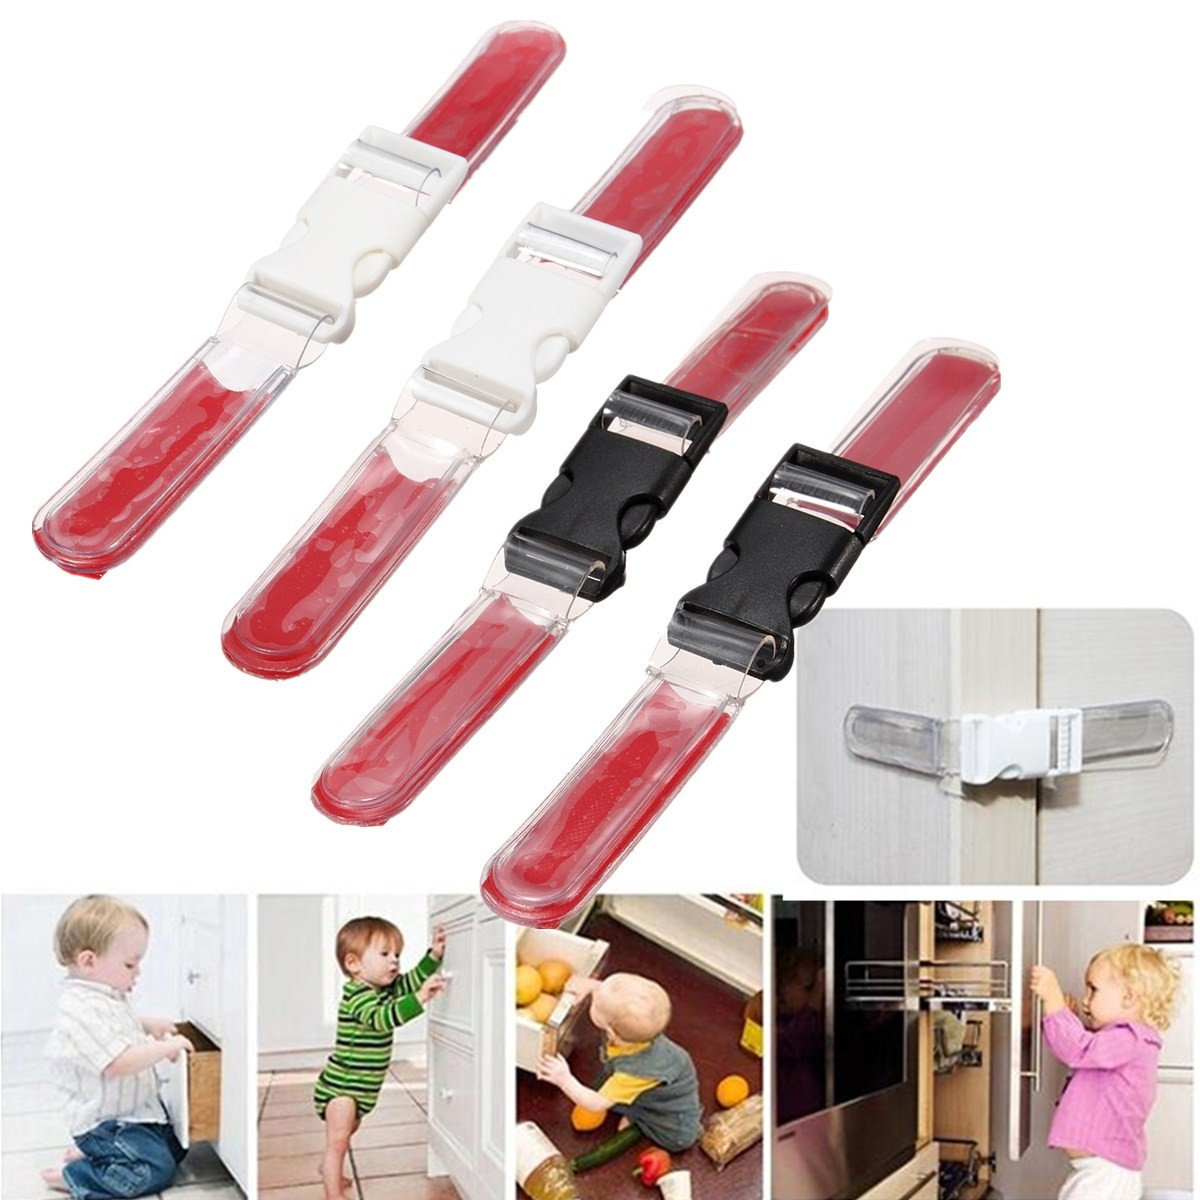 2Pcs Toddler Baby Kids Child Safety Safe Door Lock Drawer Cupboard Fridge Cabinet